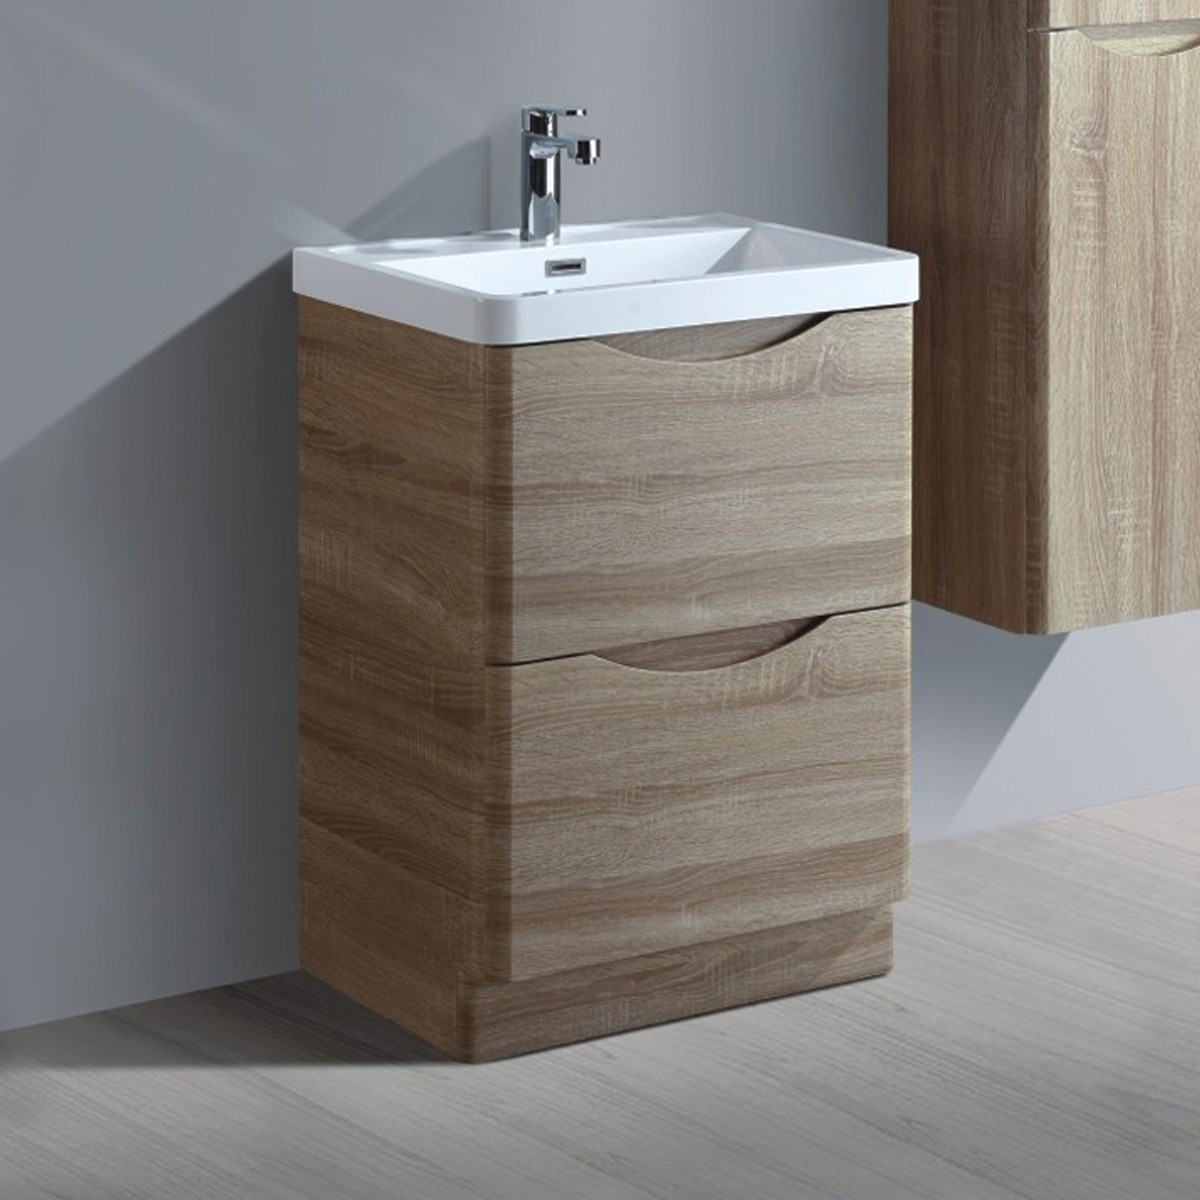 24 In. Bathroom Vanity with Basin (MYF6002-V)